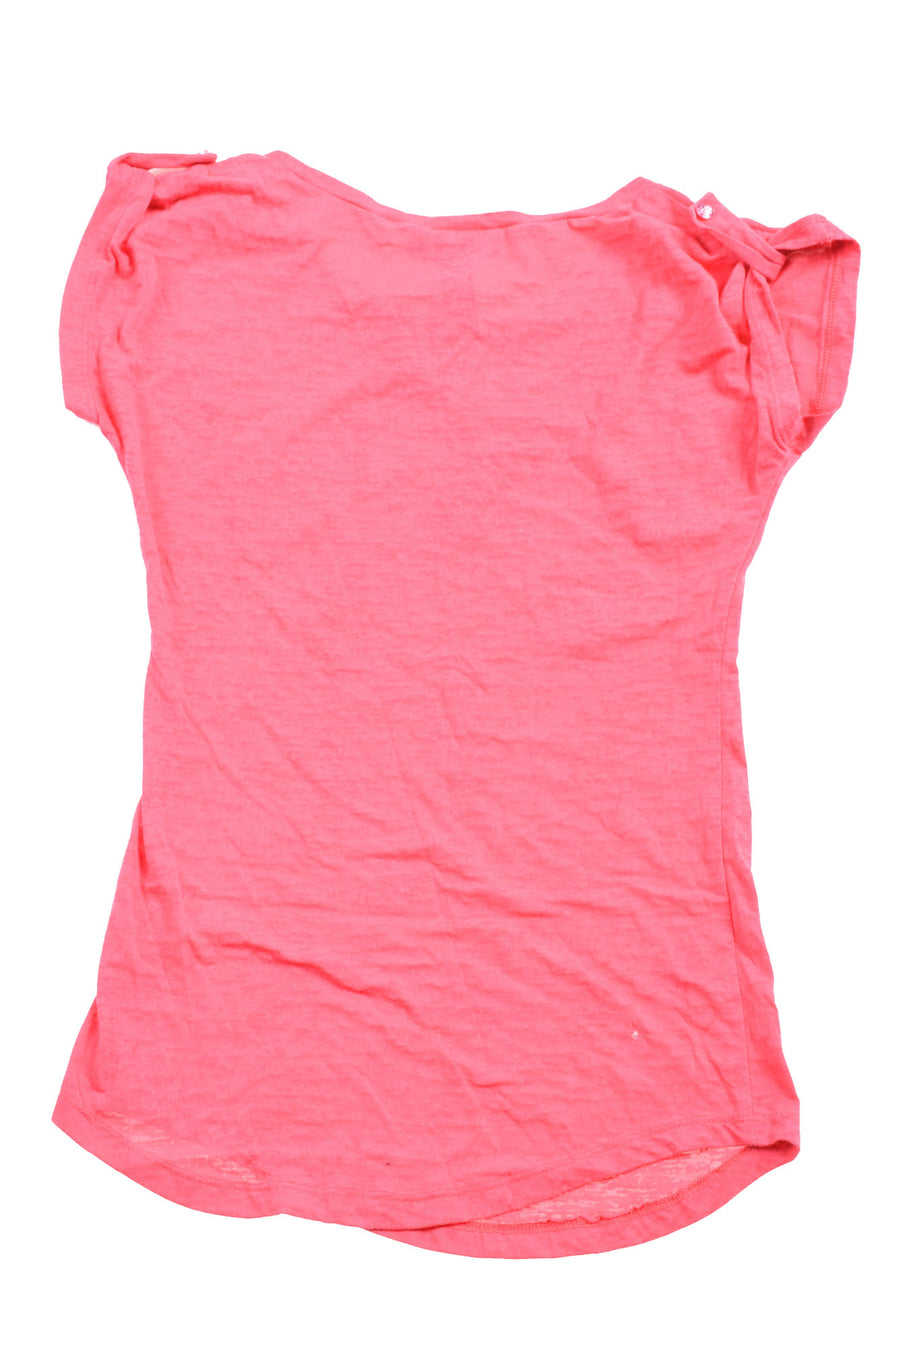 USED International Concepts Women's Shirt Small Pink